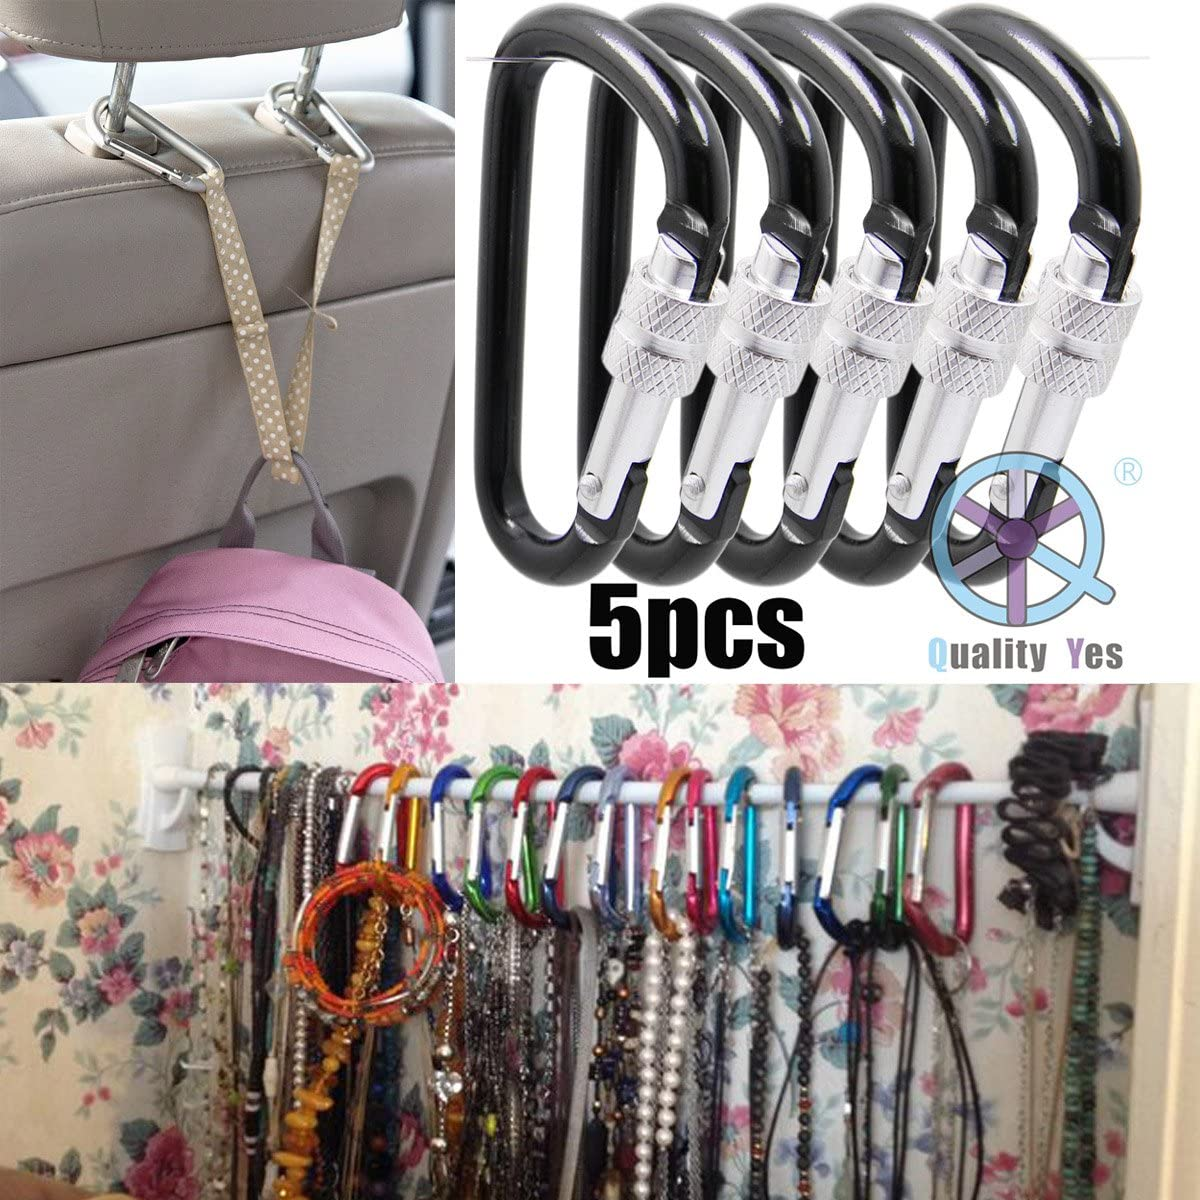 QY 5PCS Royal Blue Color 2.55 Inches Long Aluminum Screw-Locking Key Holder Spring Snap Hook Keychain D Shape Quality Yes